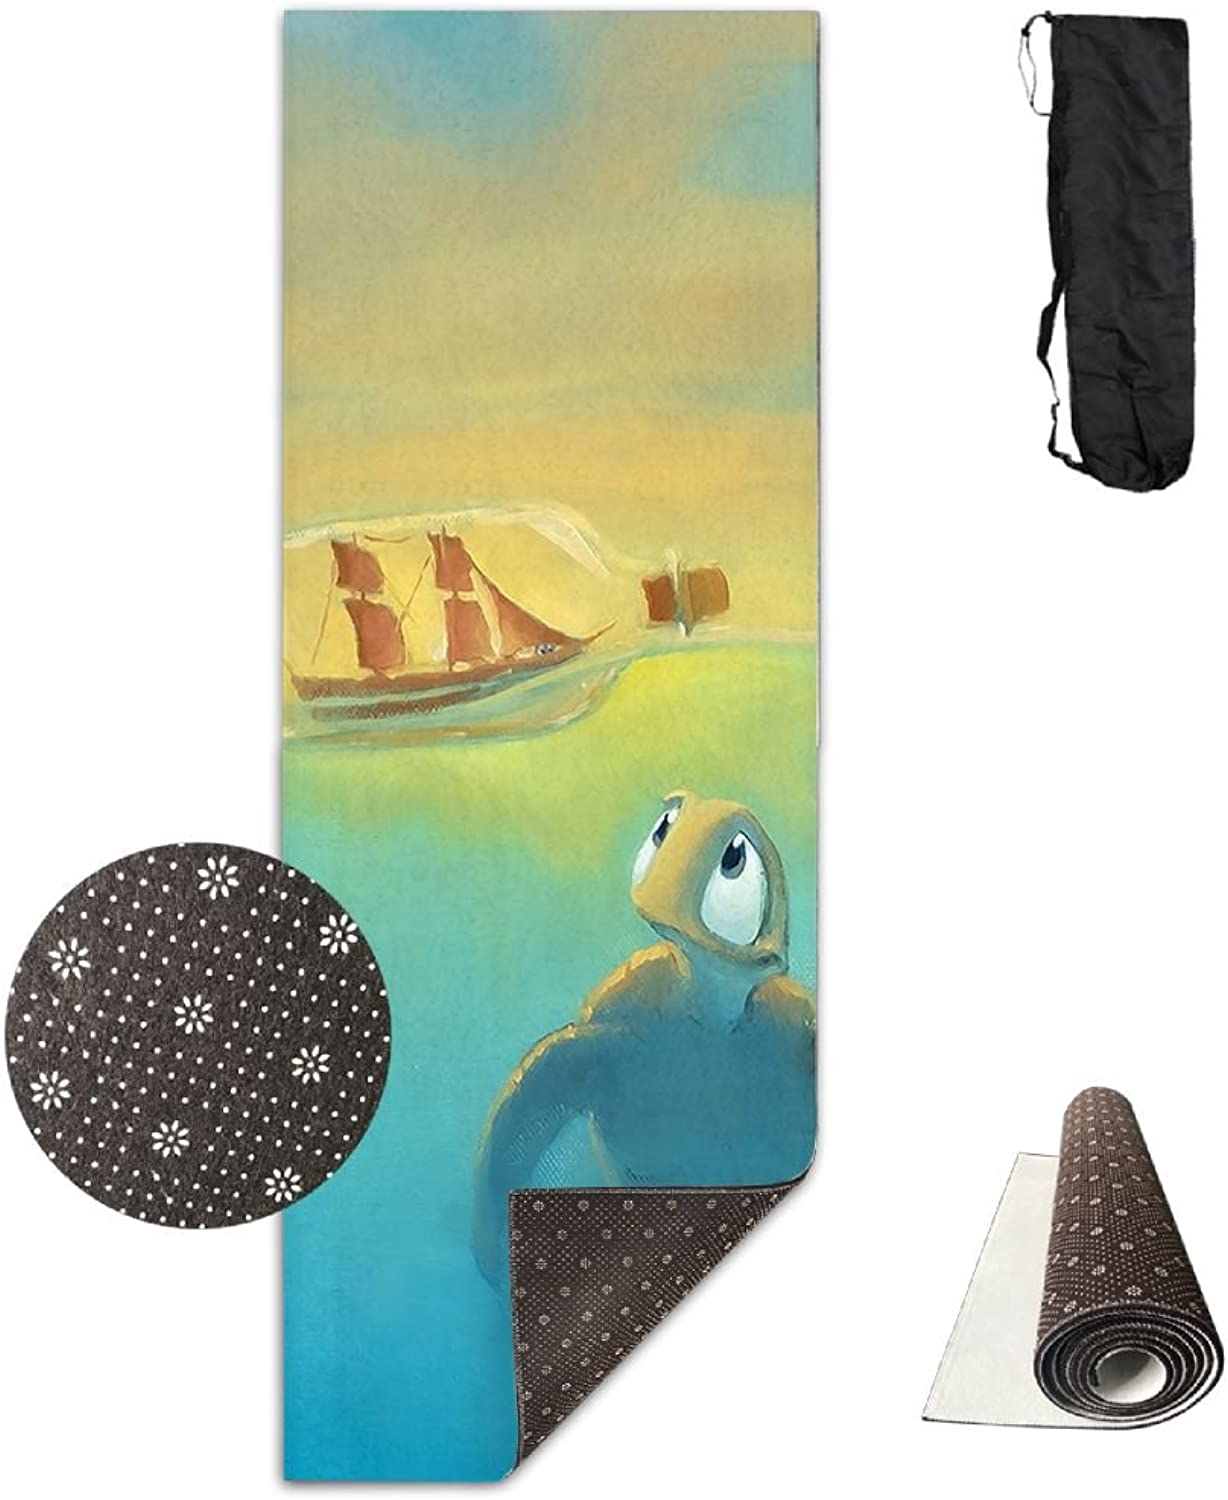 Gym Mat Turtle Baby And Bottle Fitness High Density AntiTear Exercise Yoga Mat With Carrying Bag For Exercise,Pilates